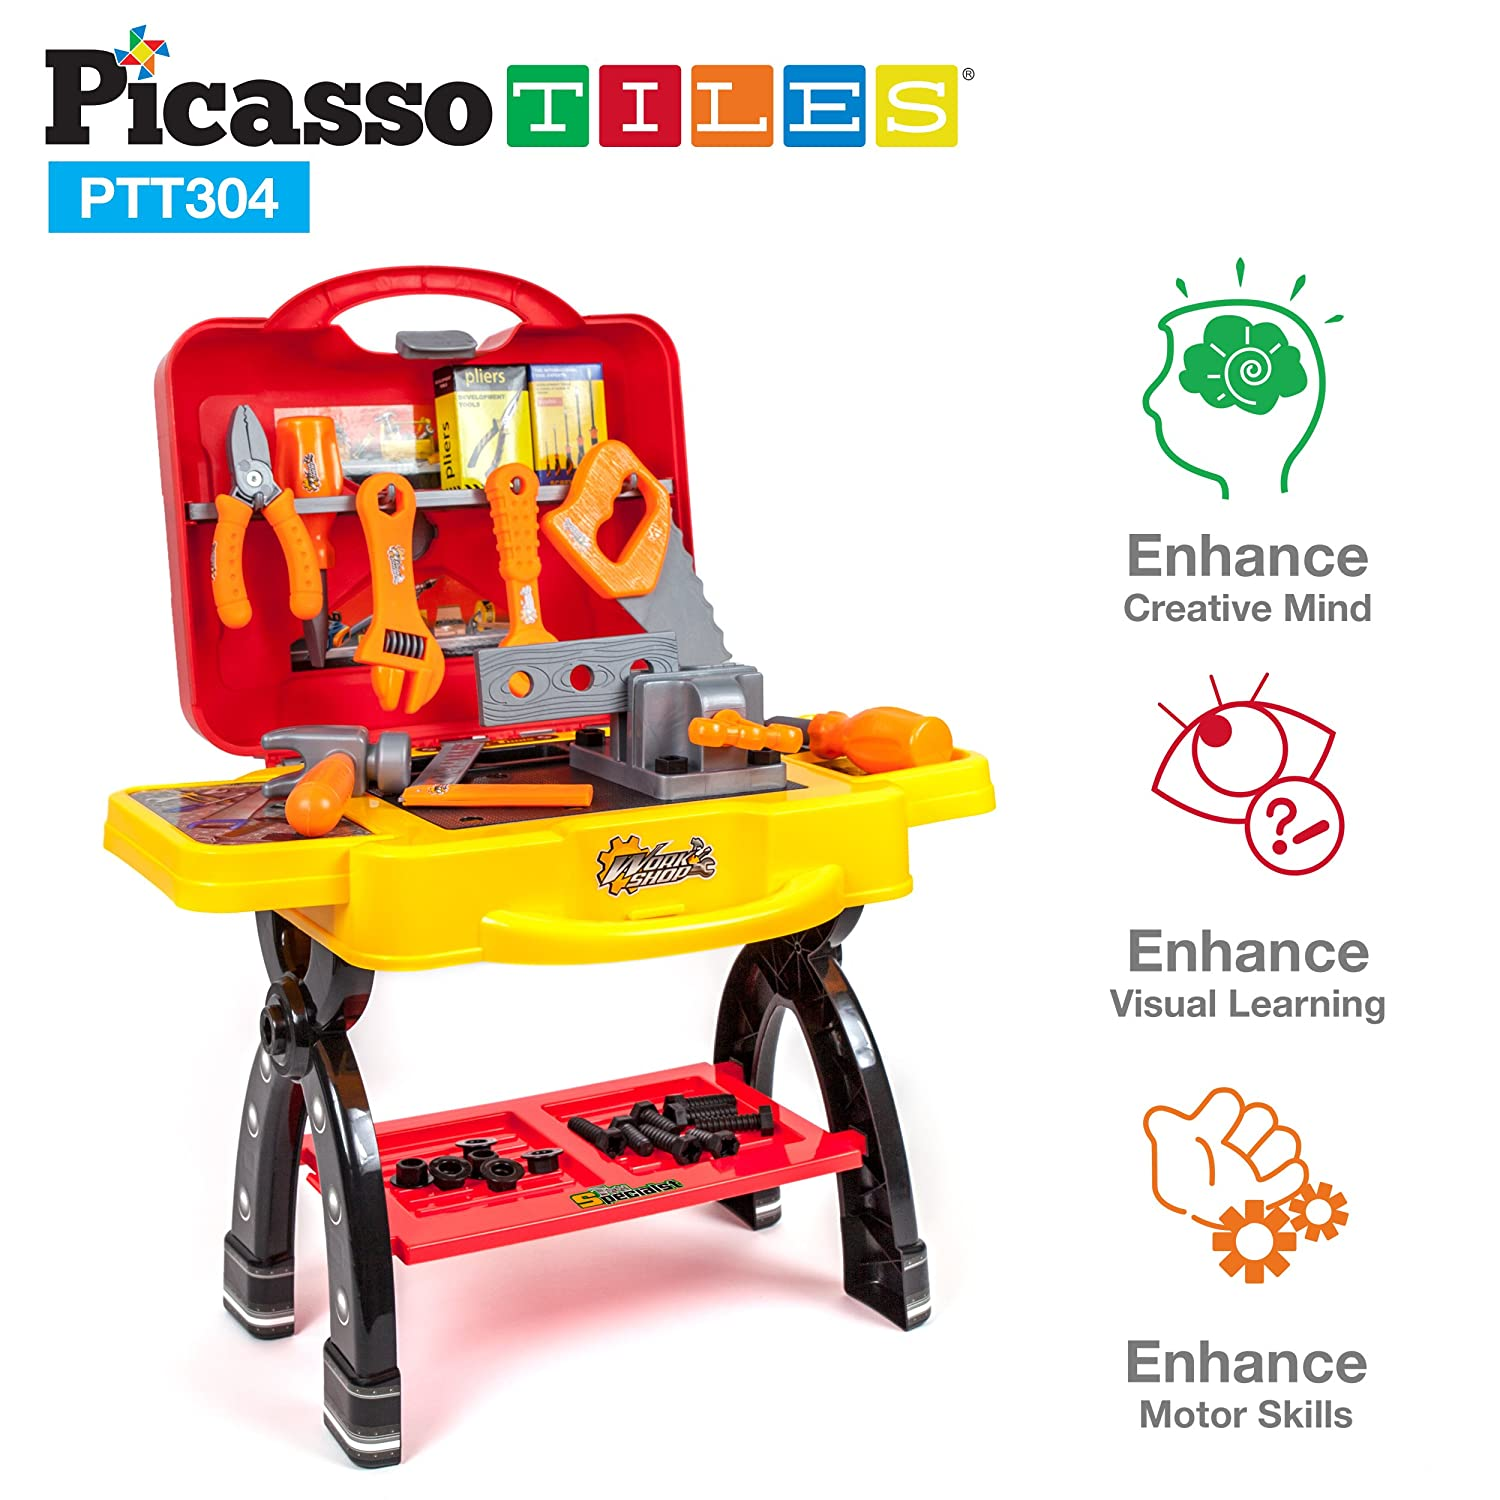 PicassoTiles Suitcase Pretend Play Set Toy Tool Workshop Work Bench Table 46pc DIY Take-A-Part Construction Building STEAM Kit Educational Toolbox with Child-Size Safe Large Parts, Carry Case PTT304